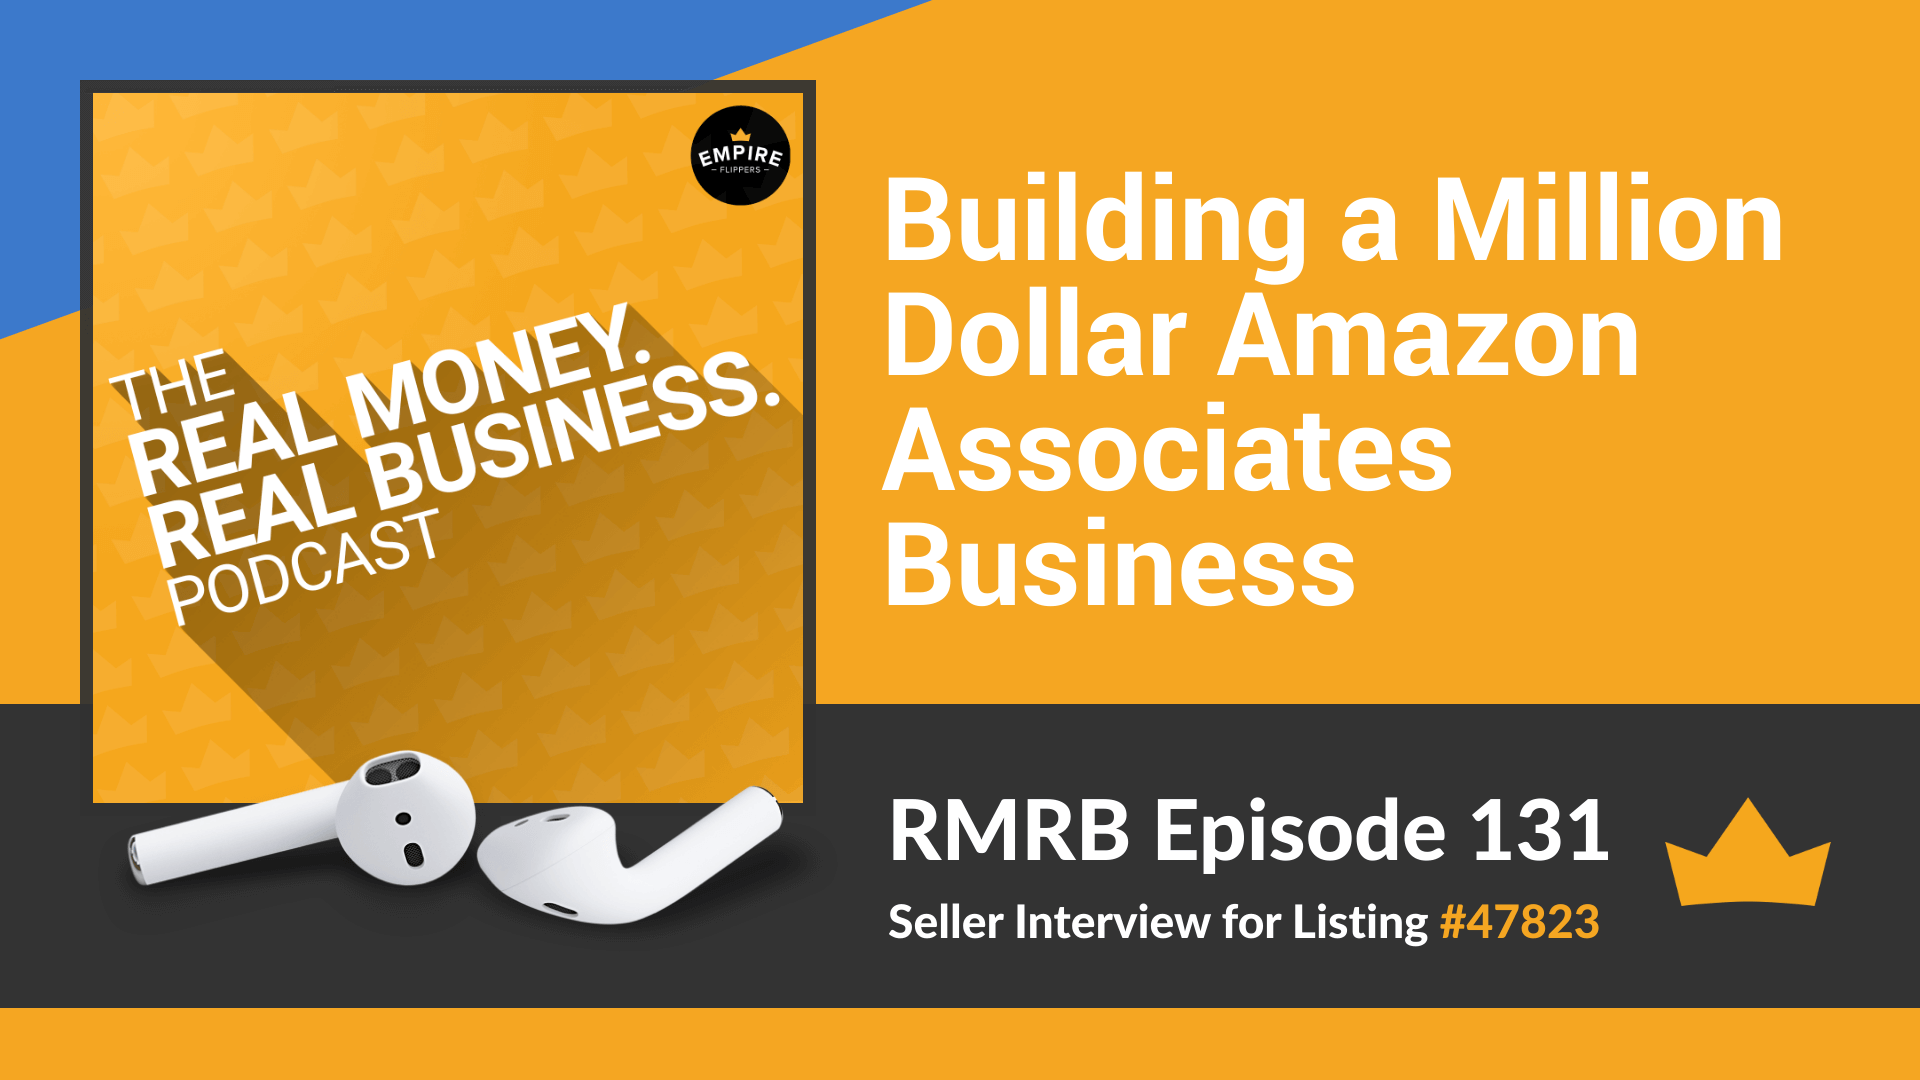 RMRB 131: Building a Million Dollar Amazon Associates Business